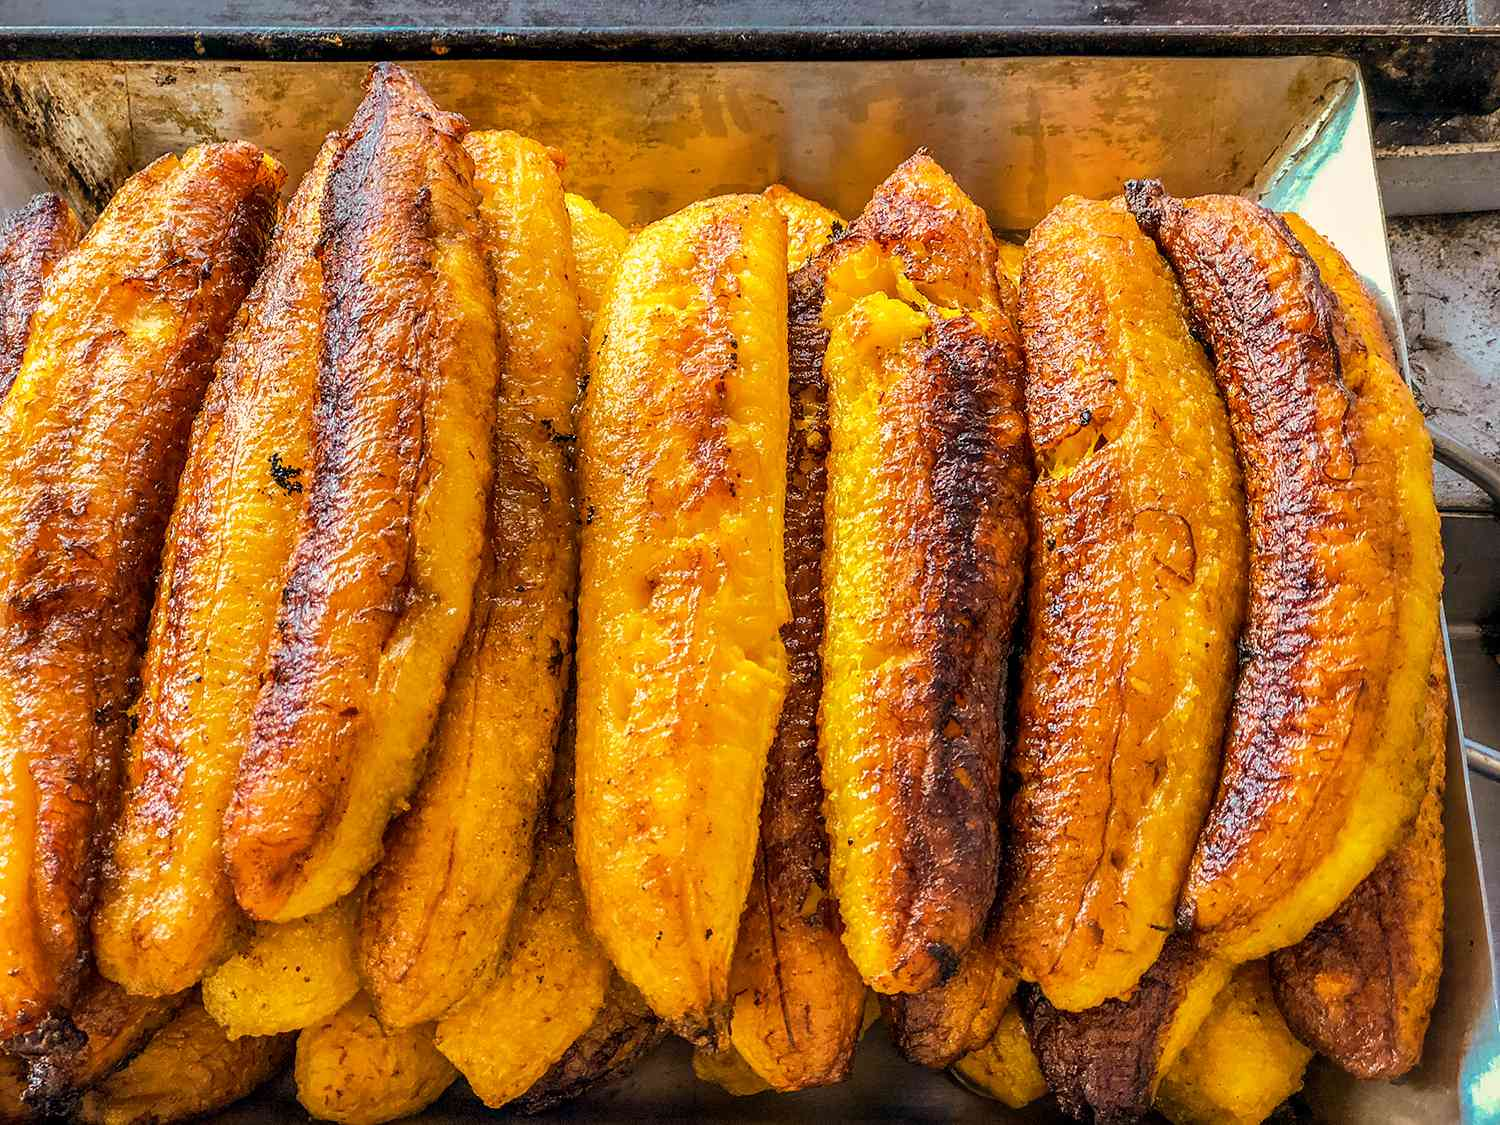 Mexican sweet Fried bananas